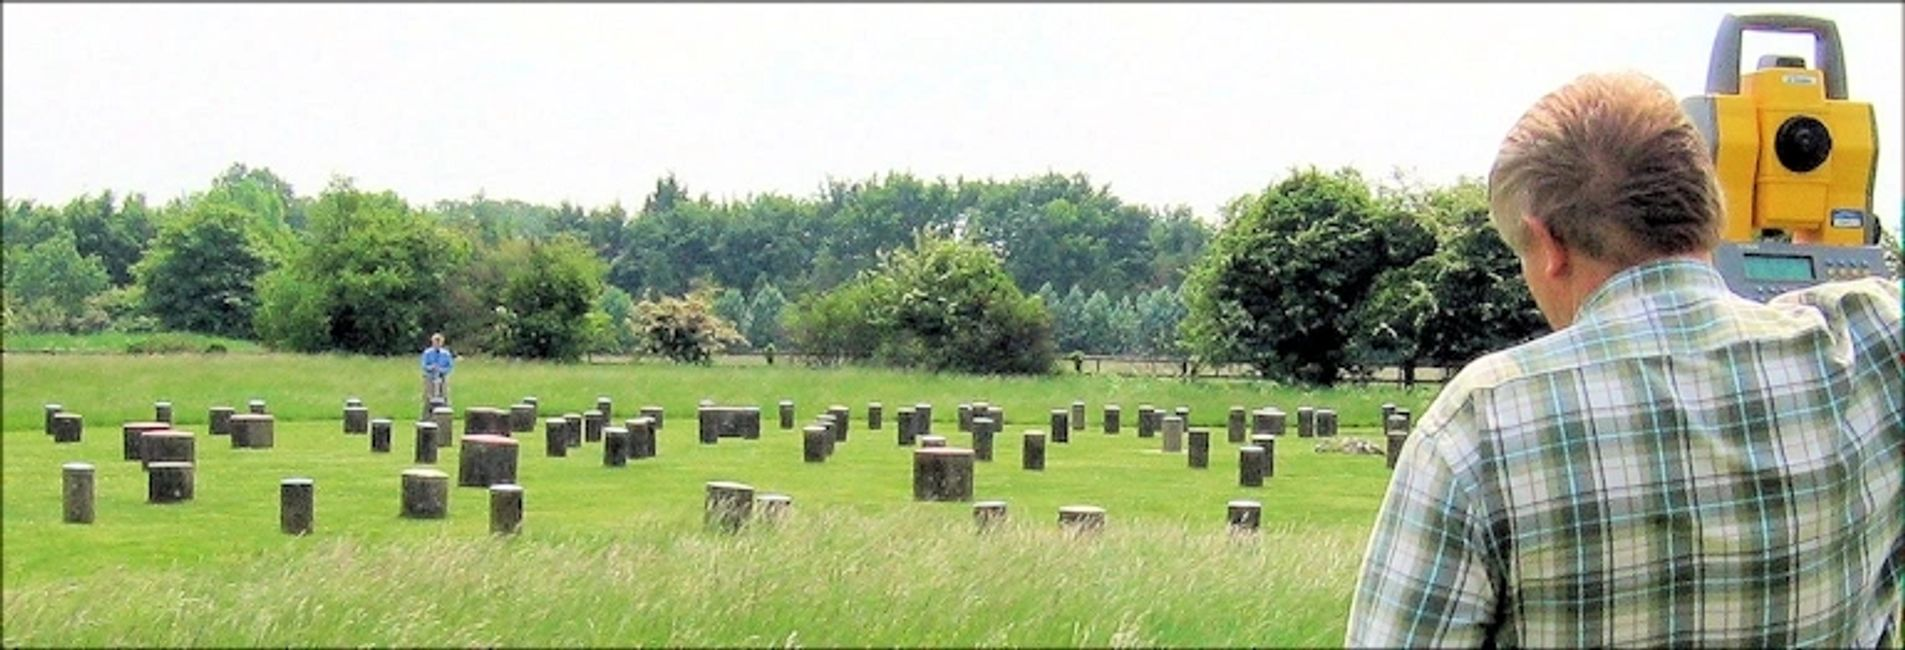 2008 photo of Jenk's brothers surveying Woodhenge with theodolite GPS work station